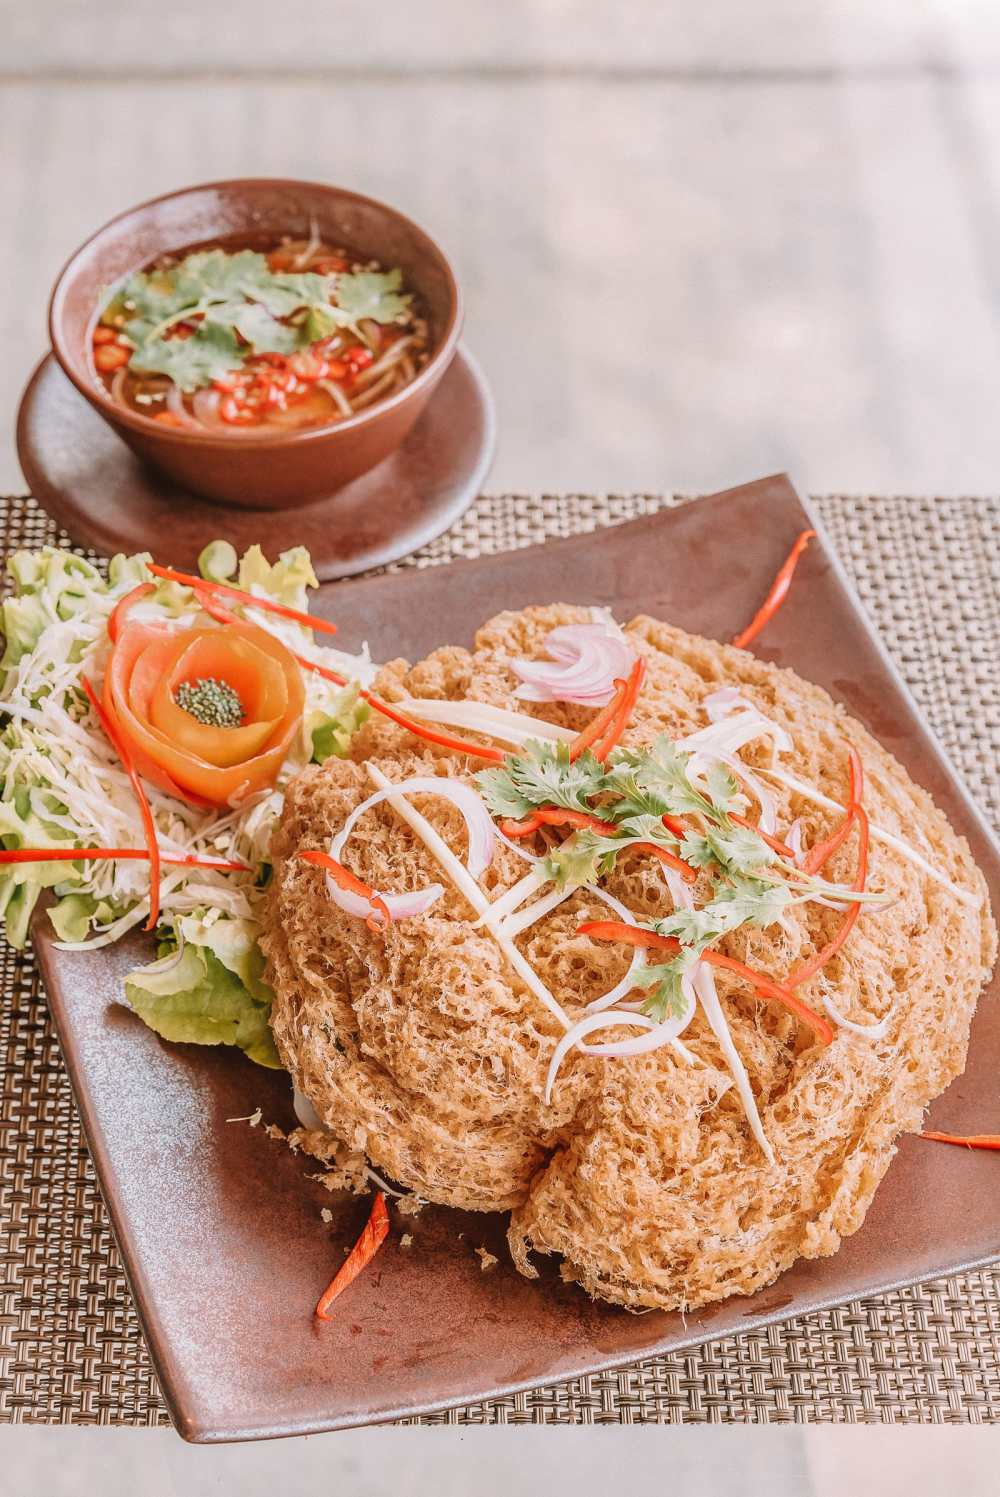 12 Tasty Thai Dishes And Food to Eat When in Thailand (5)